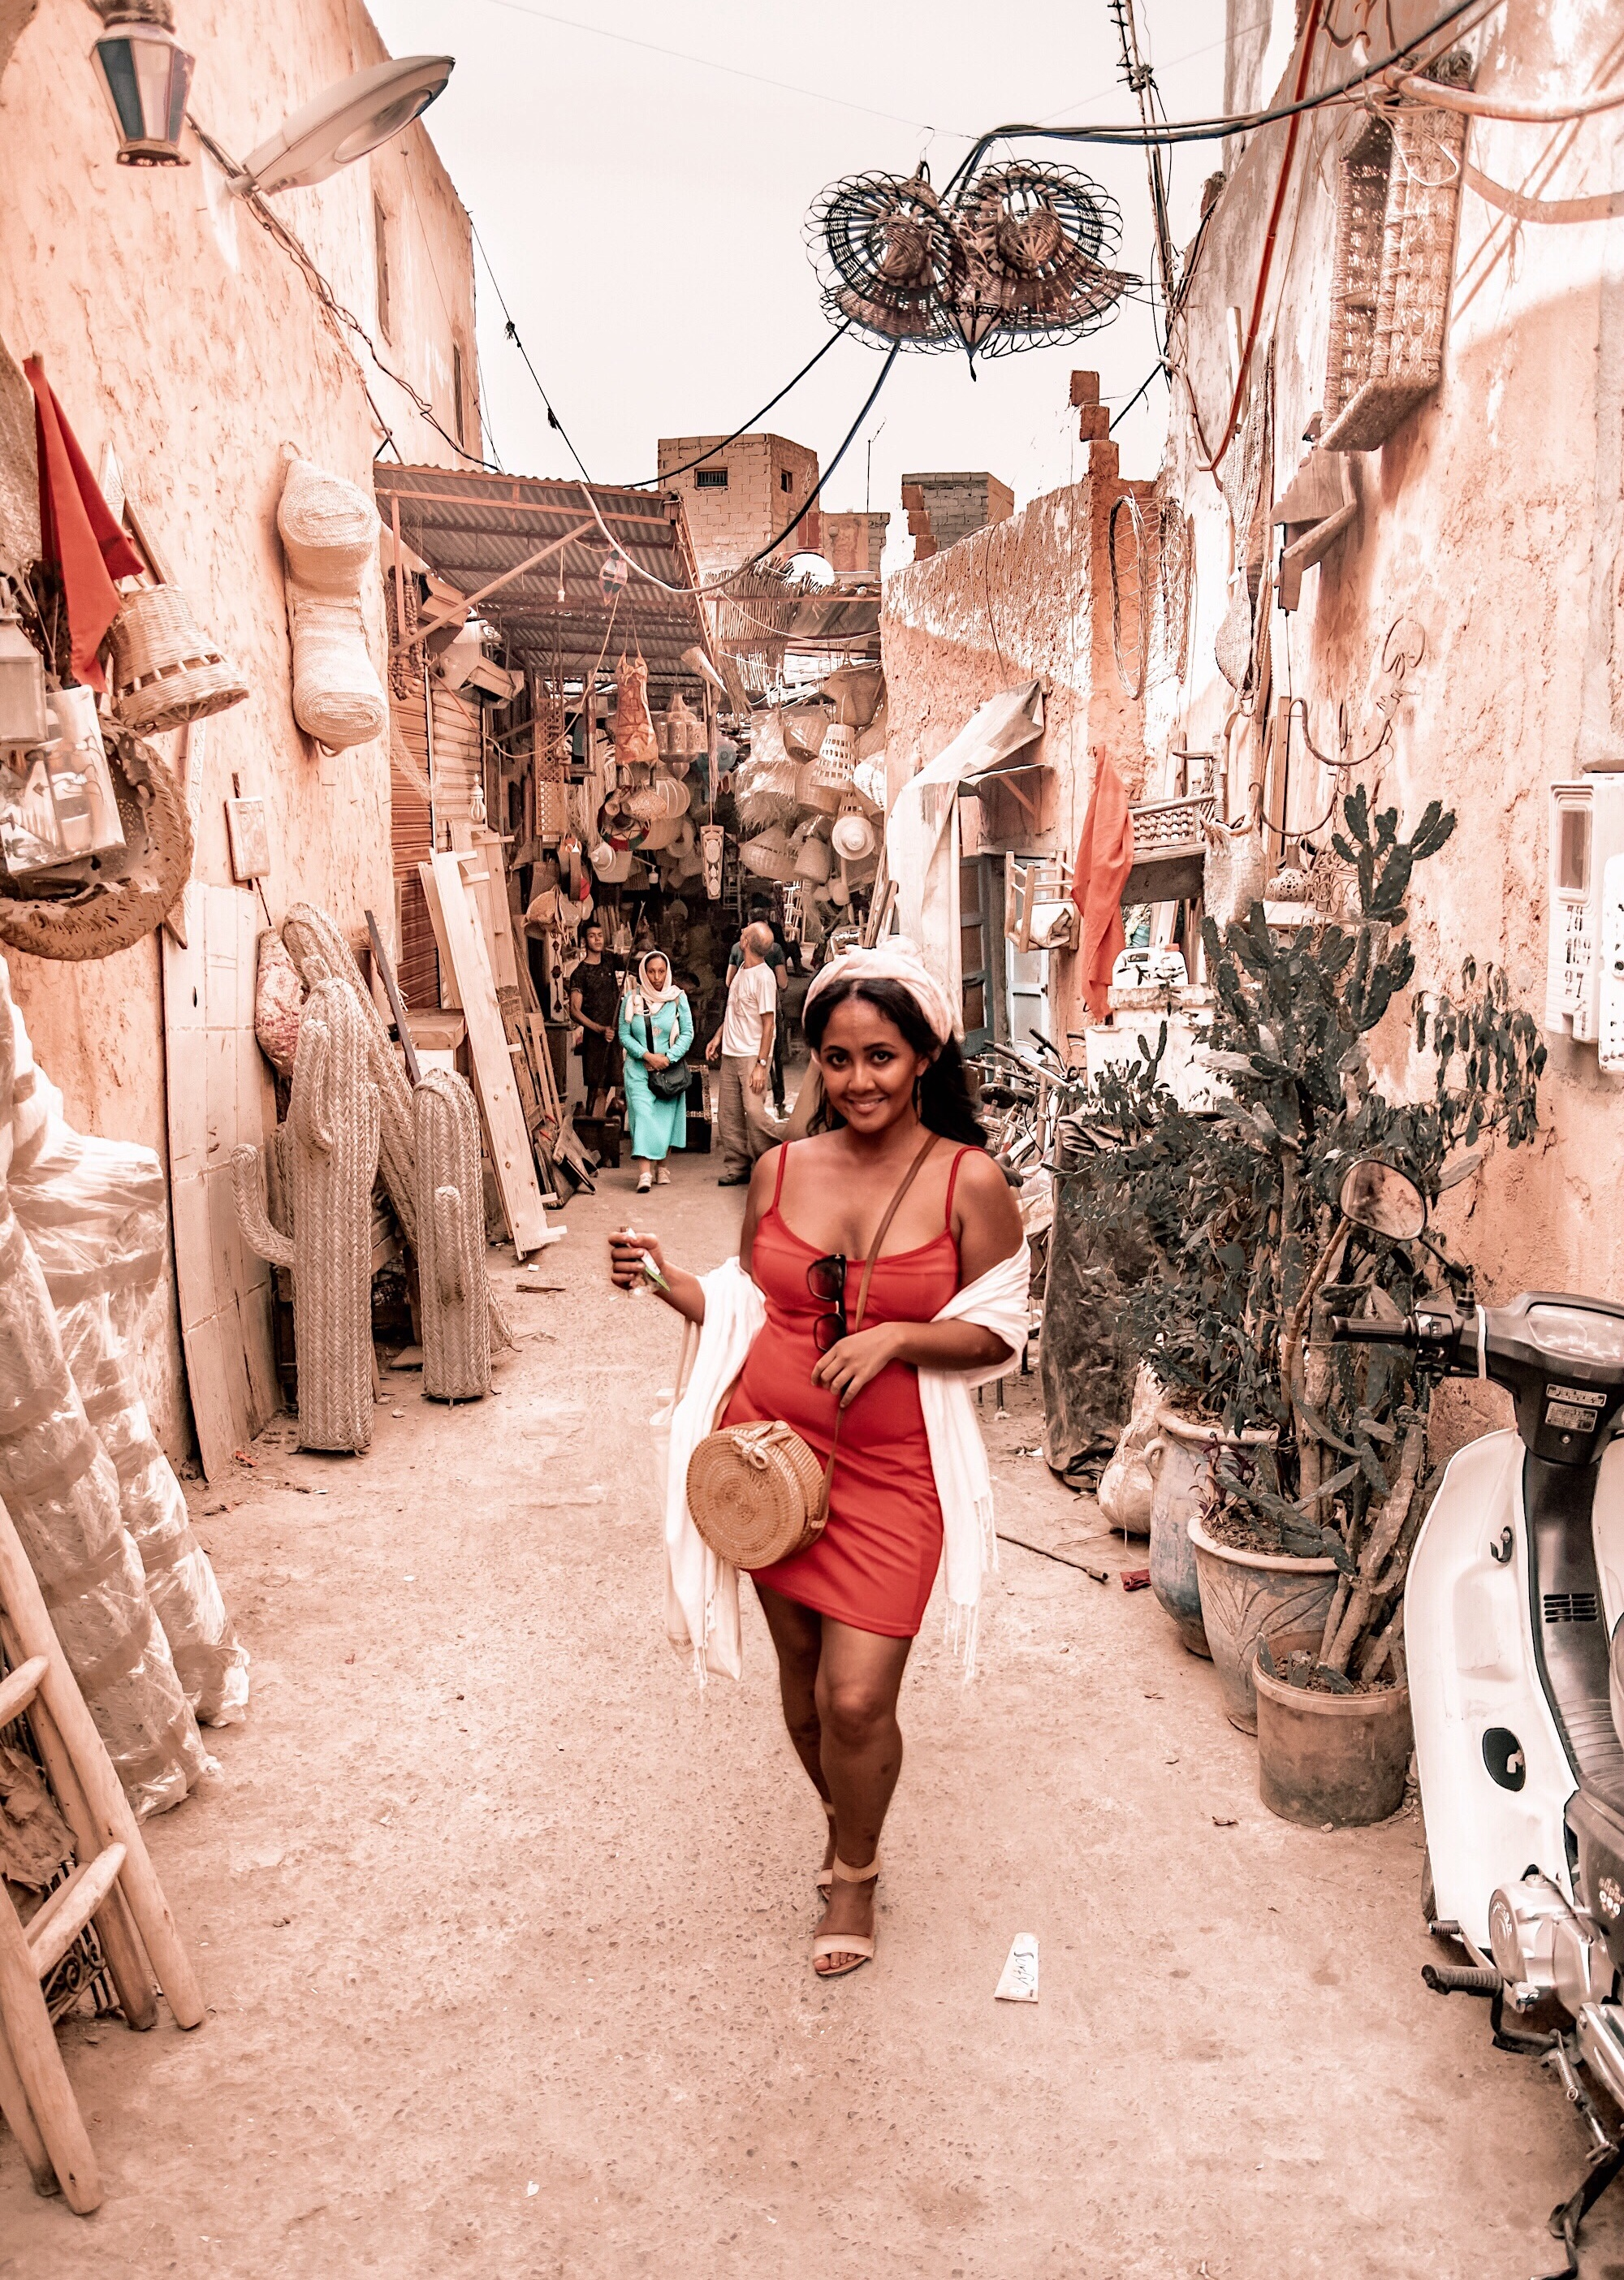 Marjolyn Lago Marj What-Color-Shoes-To-Wear-With-A-Red-Dress-How-To-Wear-A-Summer-Red-Dress-What-To-Wear-In-Morocco-Marrakech-Paris-Chic-Style-6